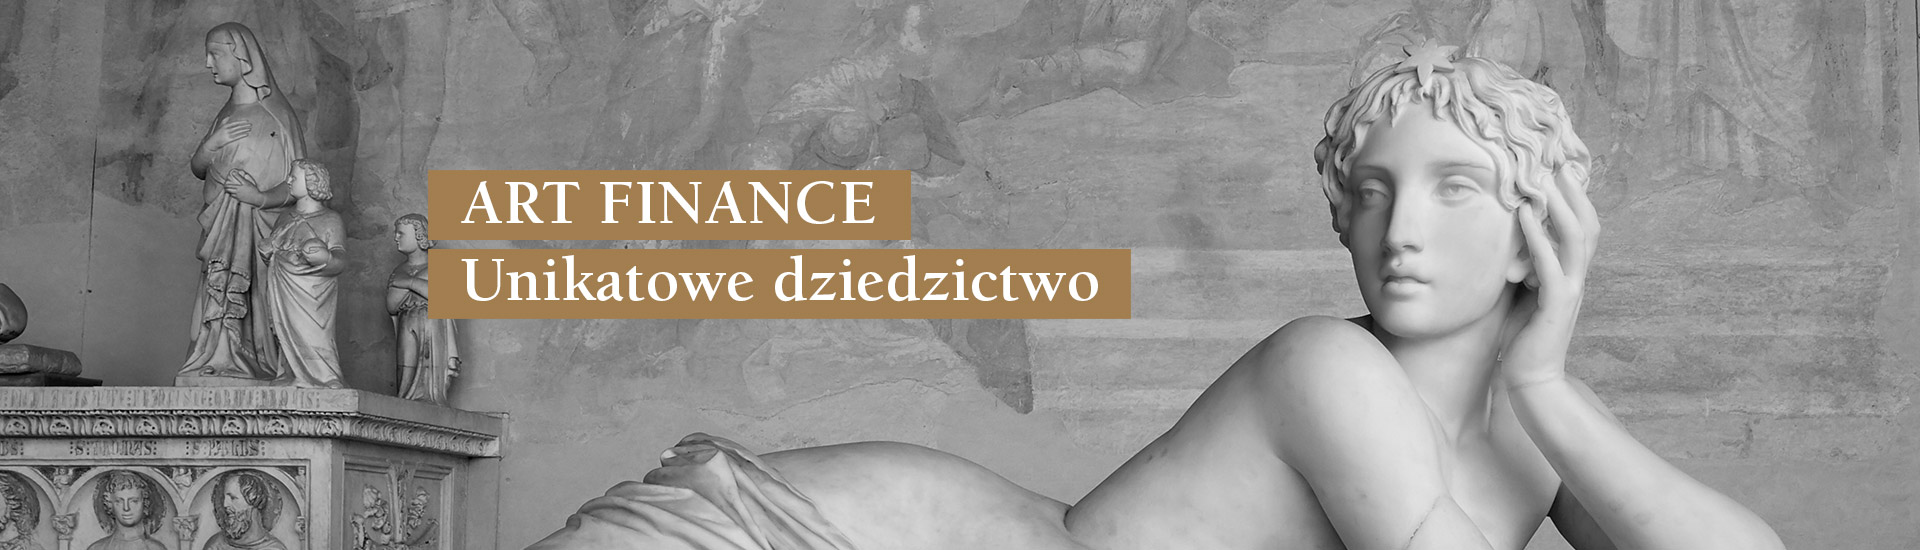 Global-kancelaria-finanse-Art-finance1